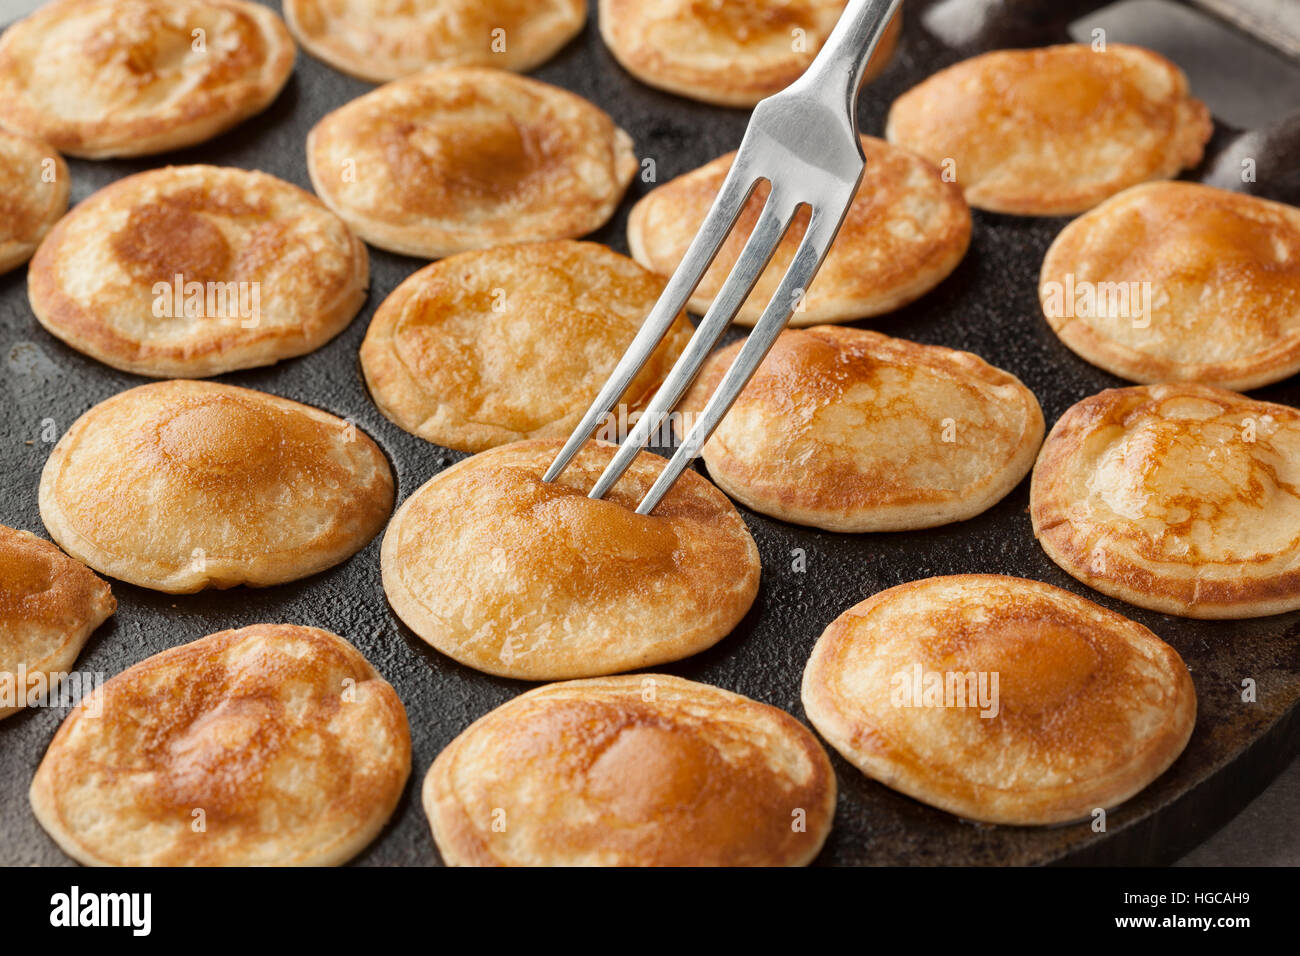 Baking Dutch mini pancakes called poffertjes in a special skillet pan - Stock Image